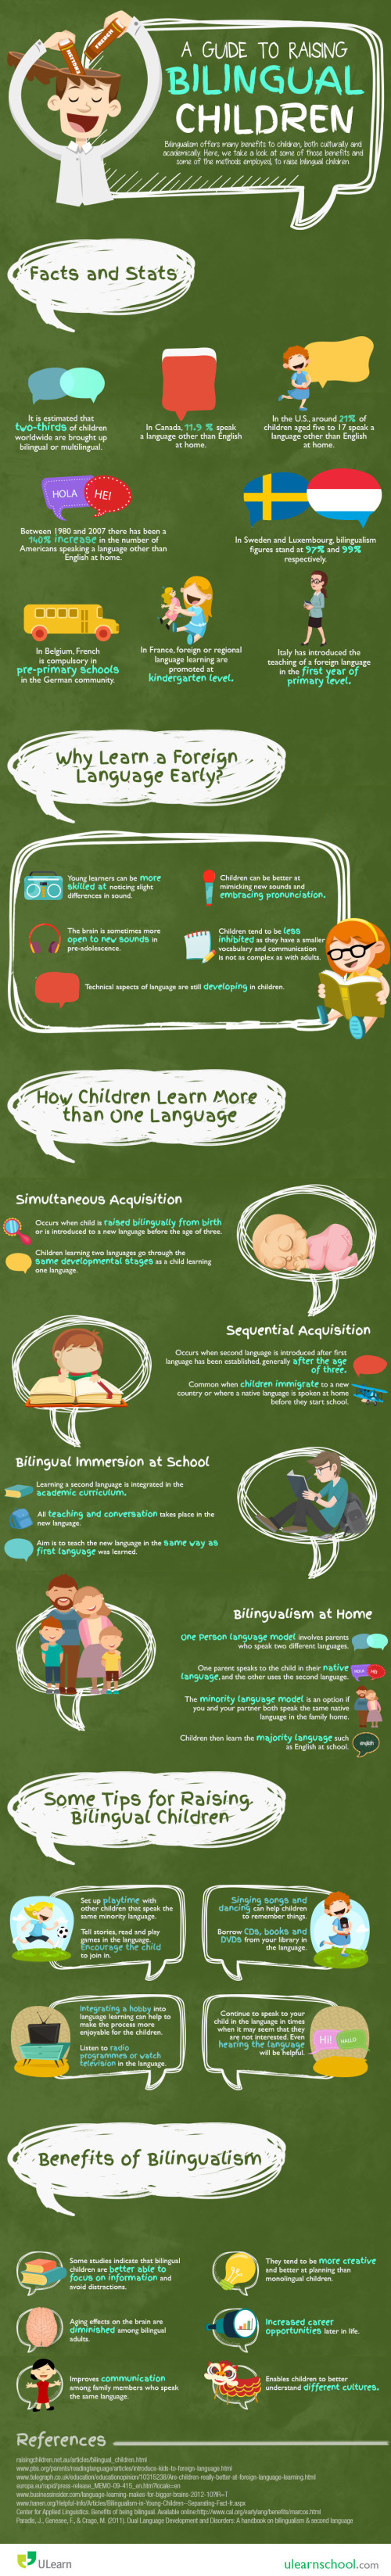 Guide to raising bilingual children